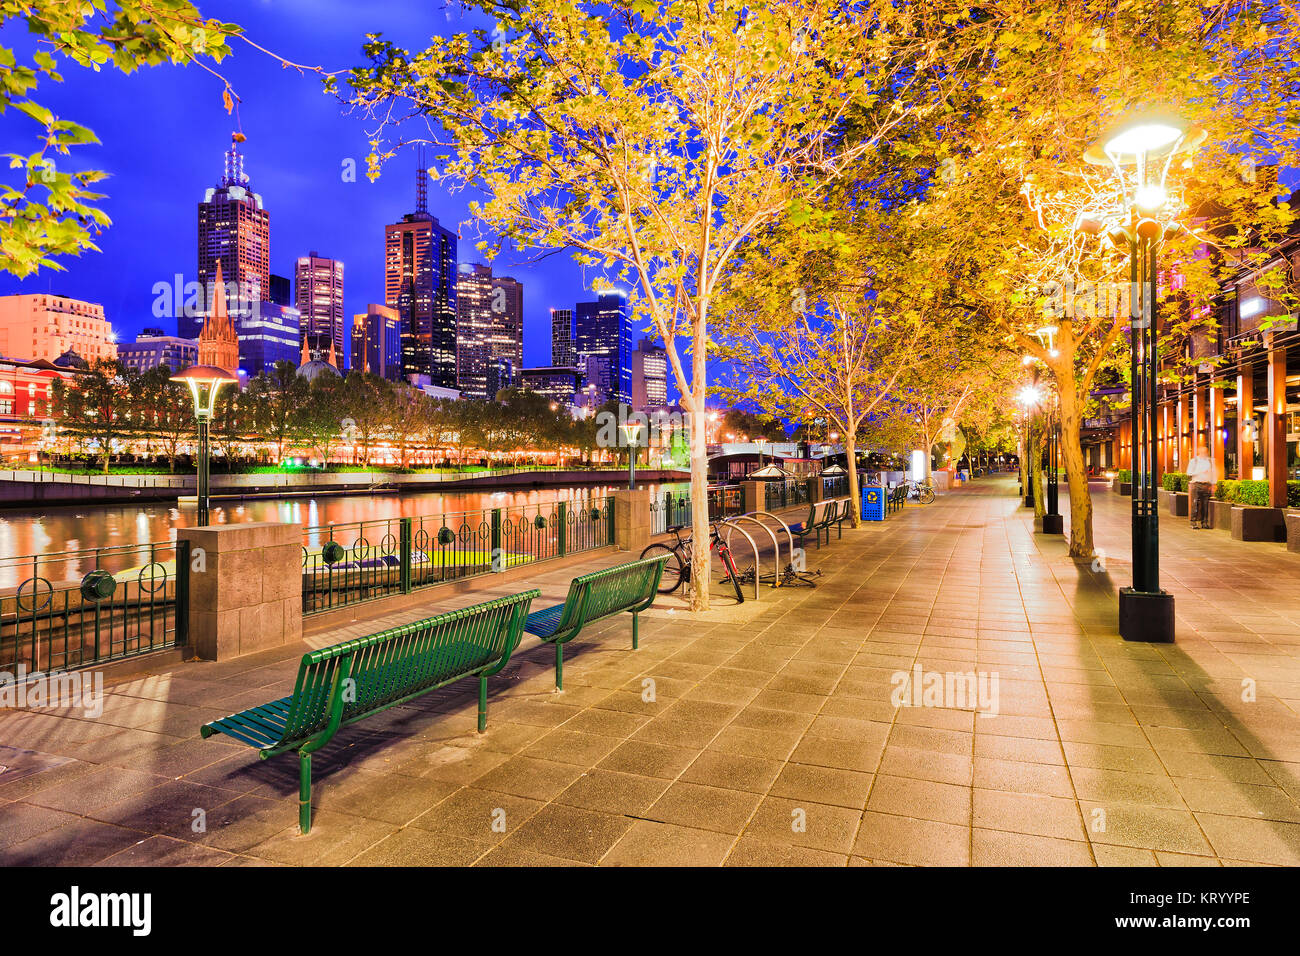 Boardwalk for shoppers on southbank yarra river side in Melbourne city CBD at sunrise under leafy trees and illuminated - Stock Image